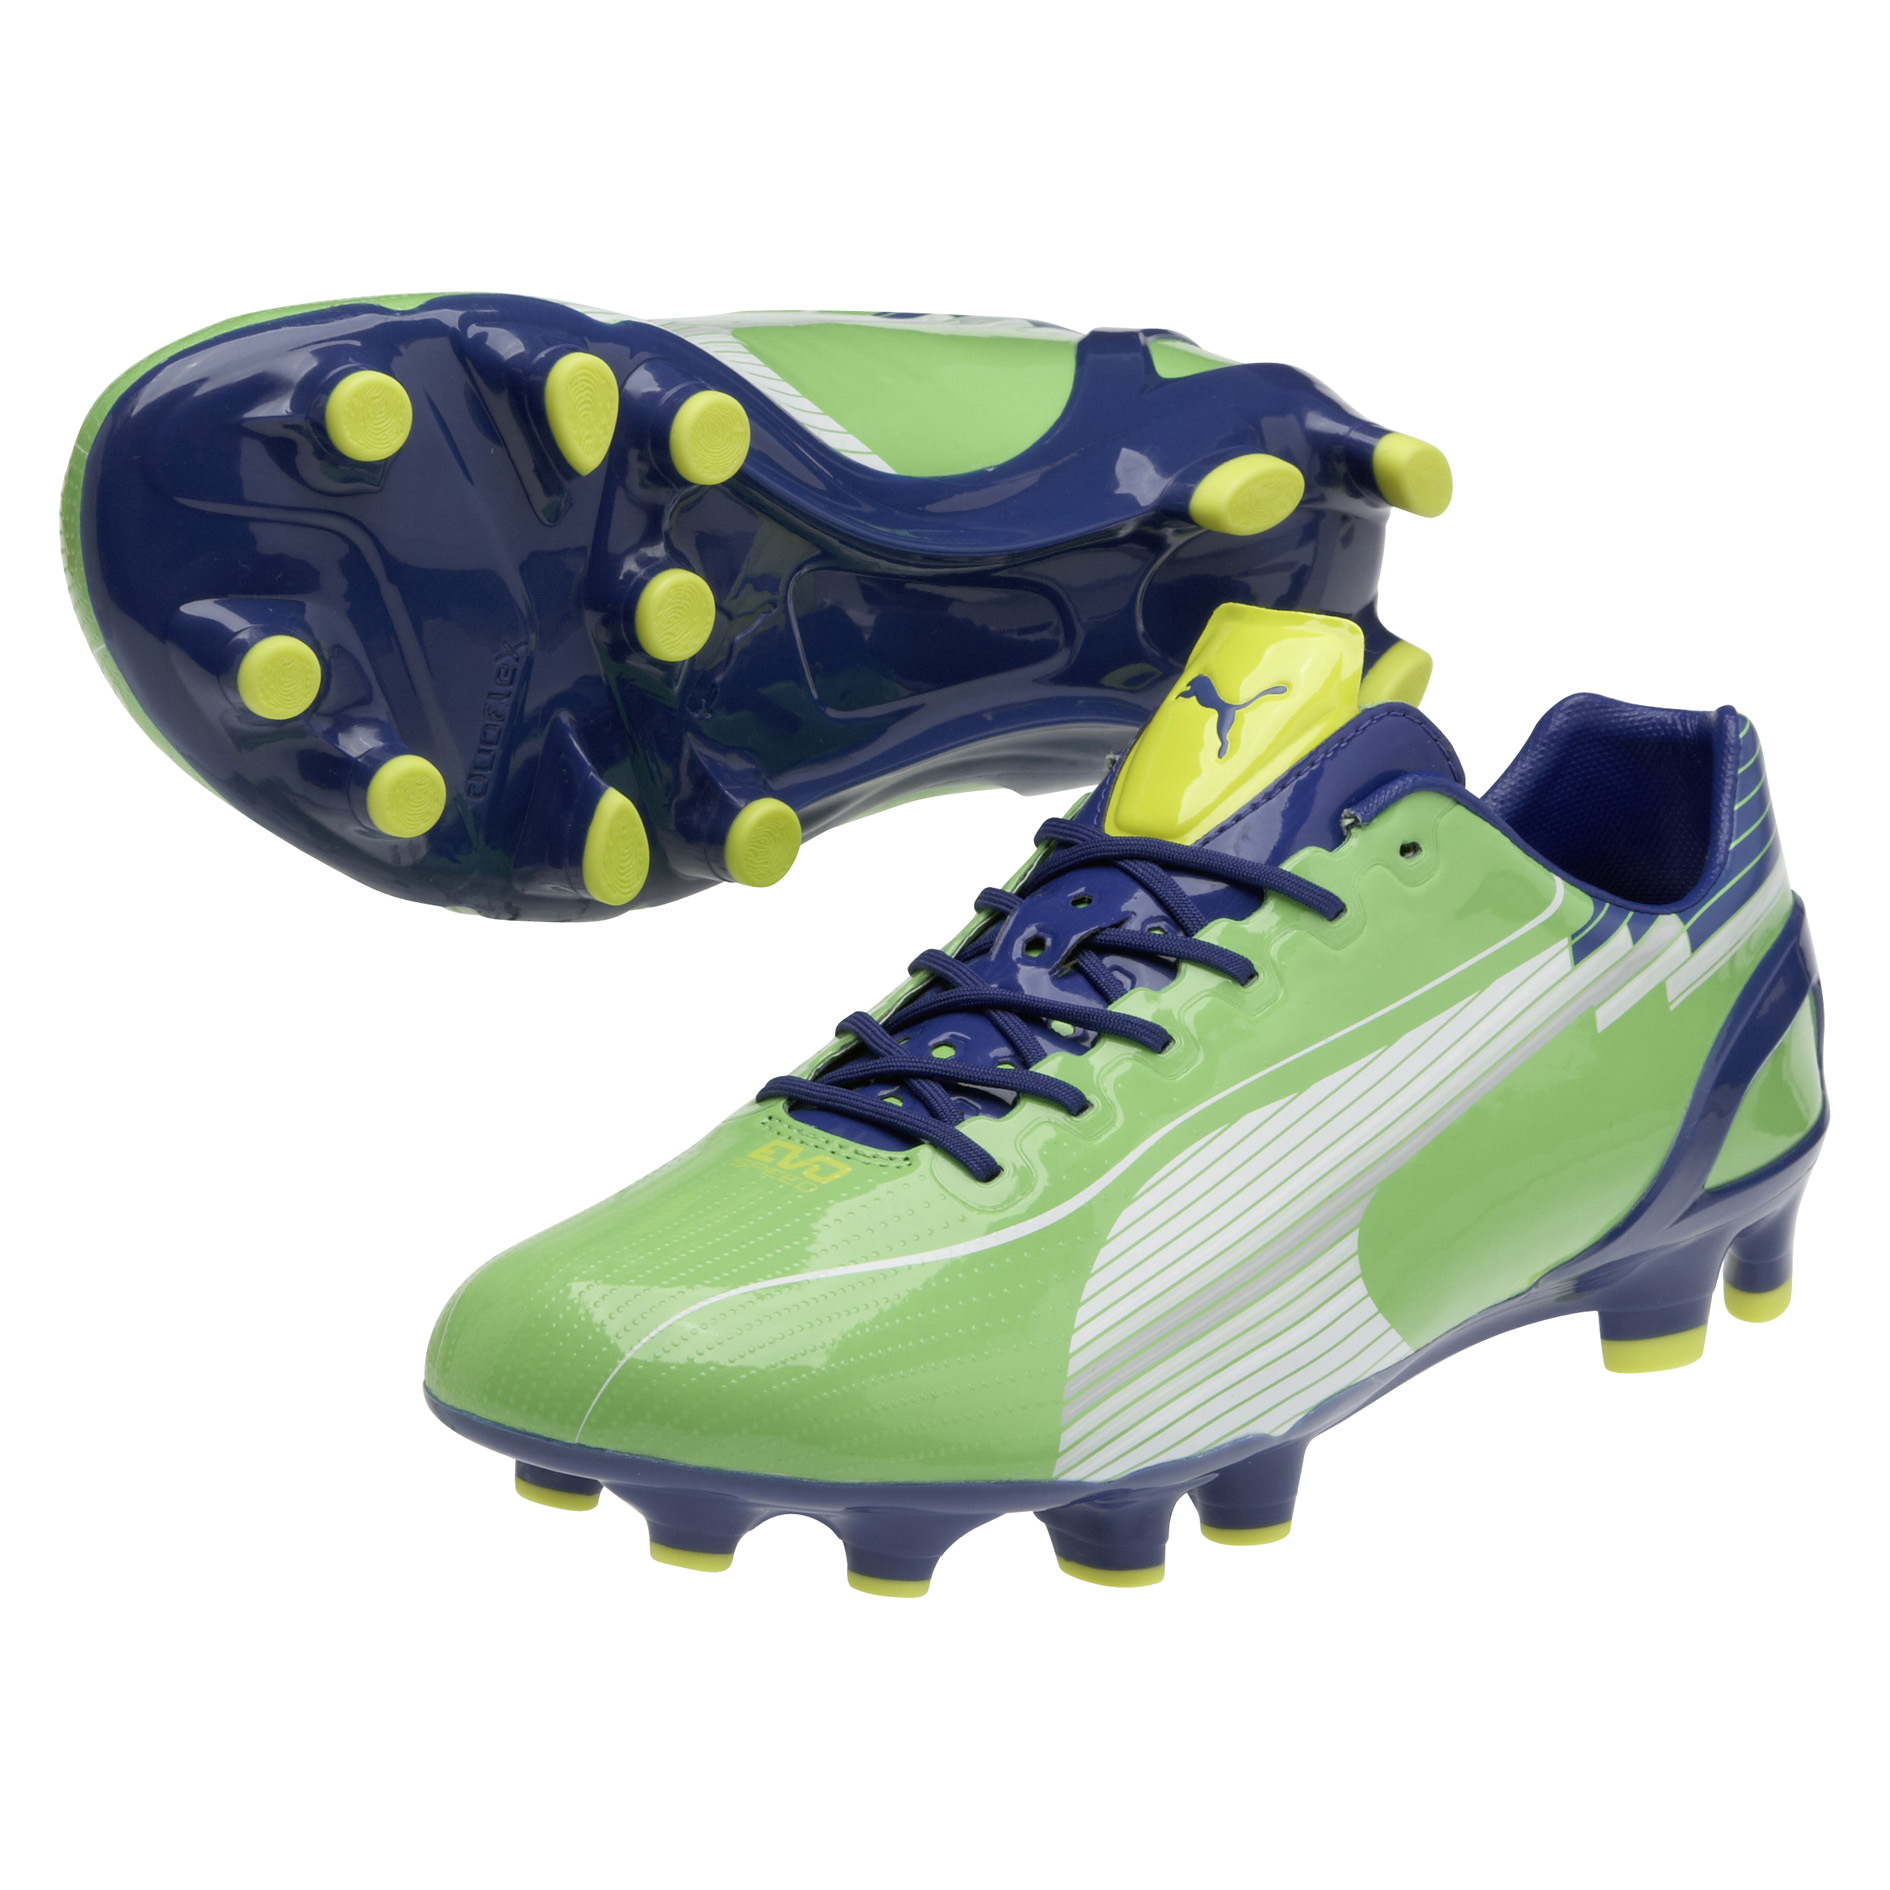 Puma evoSPEED 1 Firm Ground Football Boots - Jasmin Green/Blue/Fluo Yellow